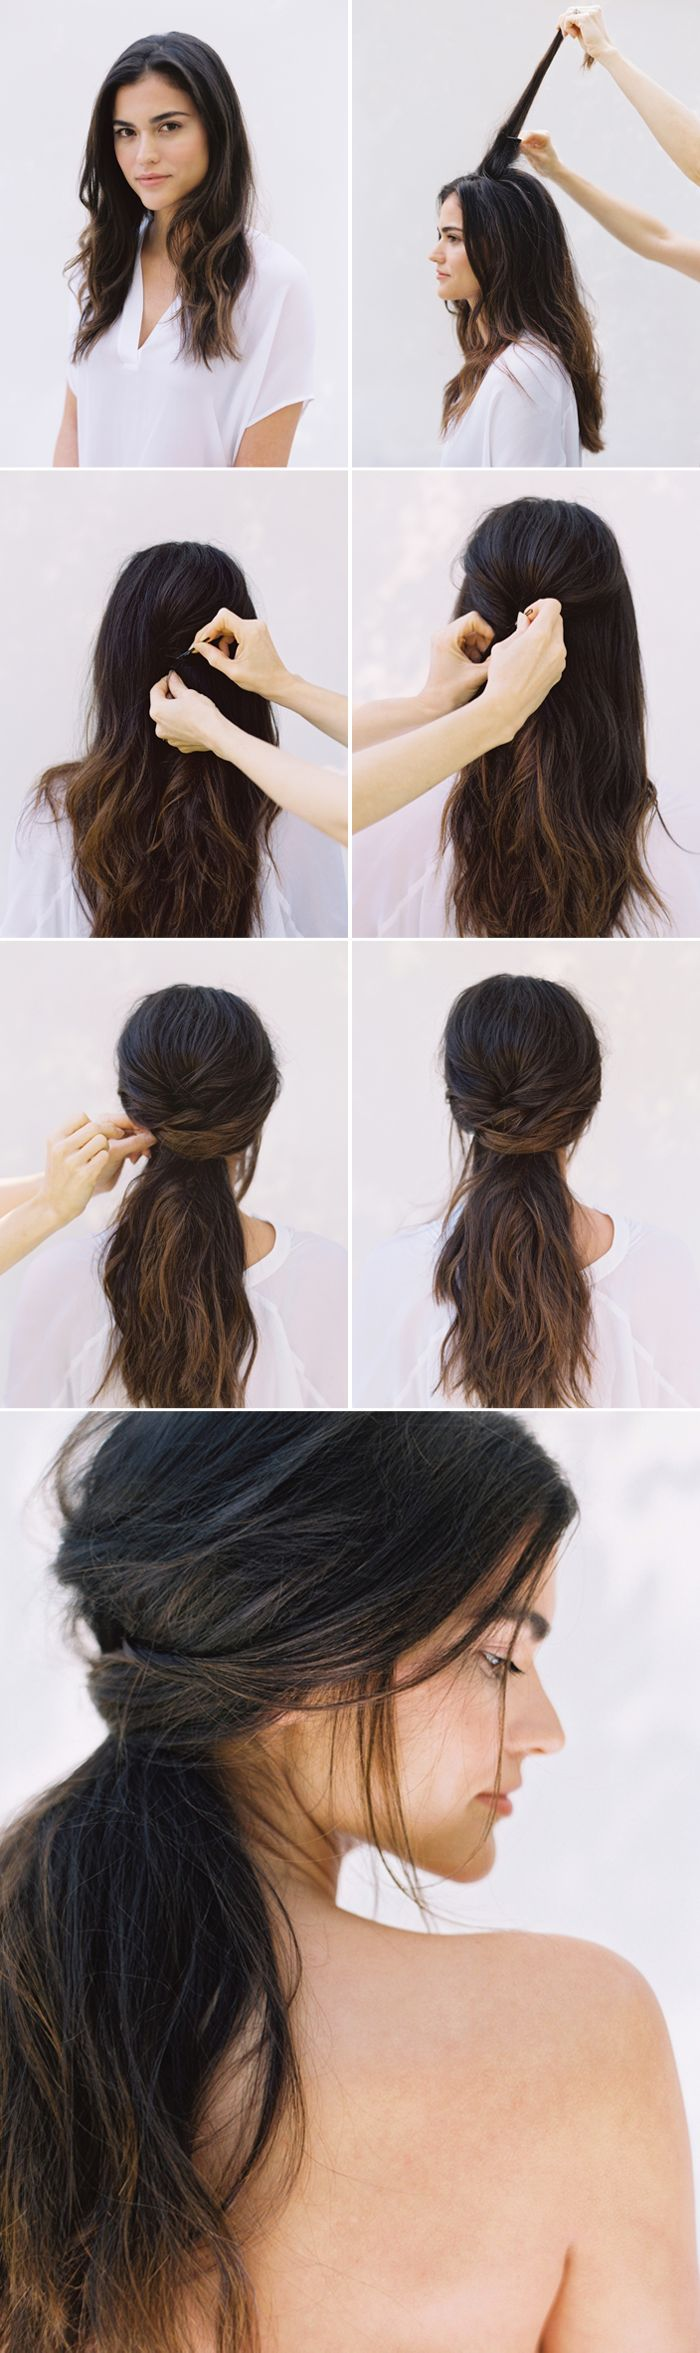 DIY Half Up Half Down Wedding Hair - #diyhairtutorial #diyhairstyle #diyhalfuphalfdown